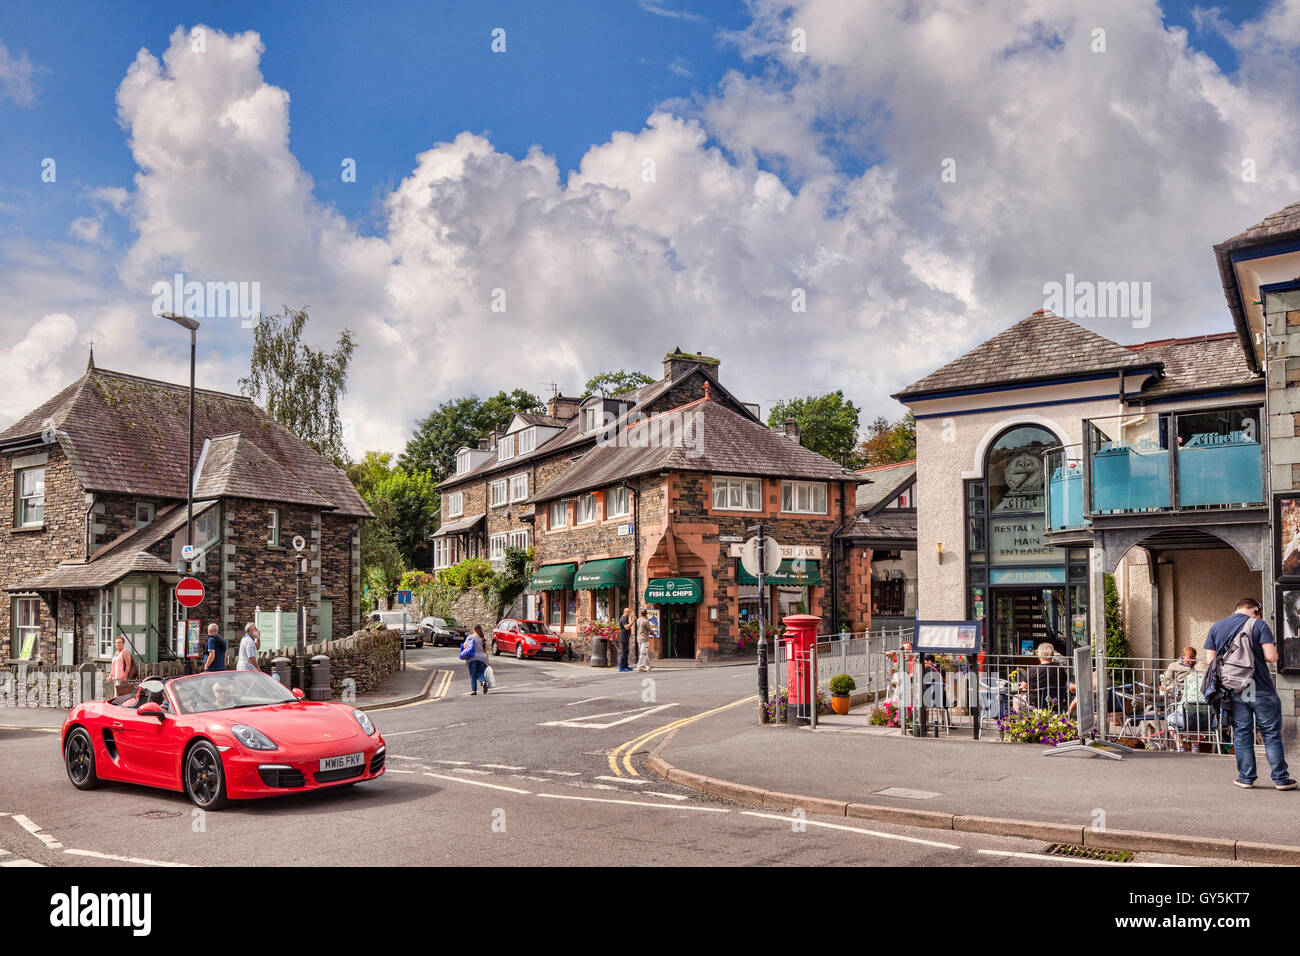 A red sports car driving through the village of Ambleside, Lake District National Park, Cumbria, England, UK - Stock Image